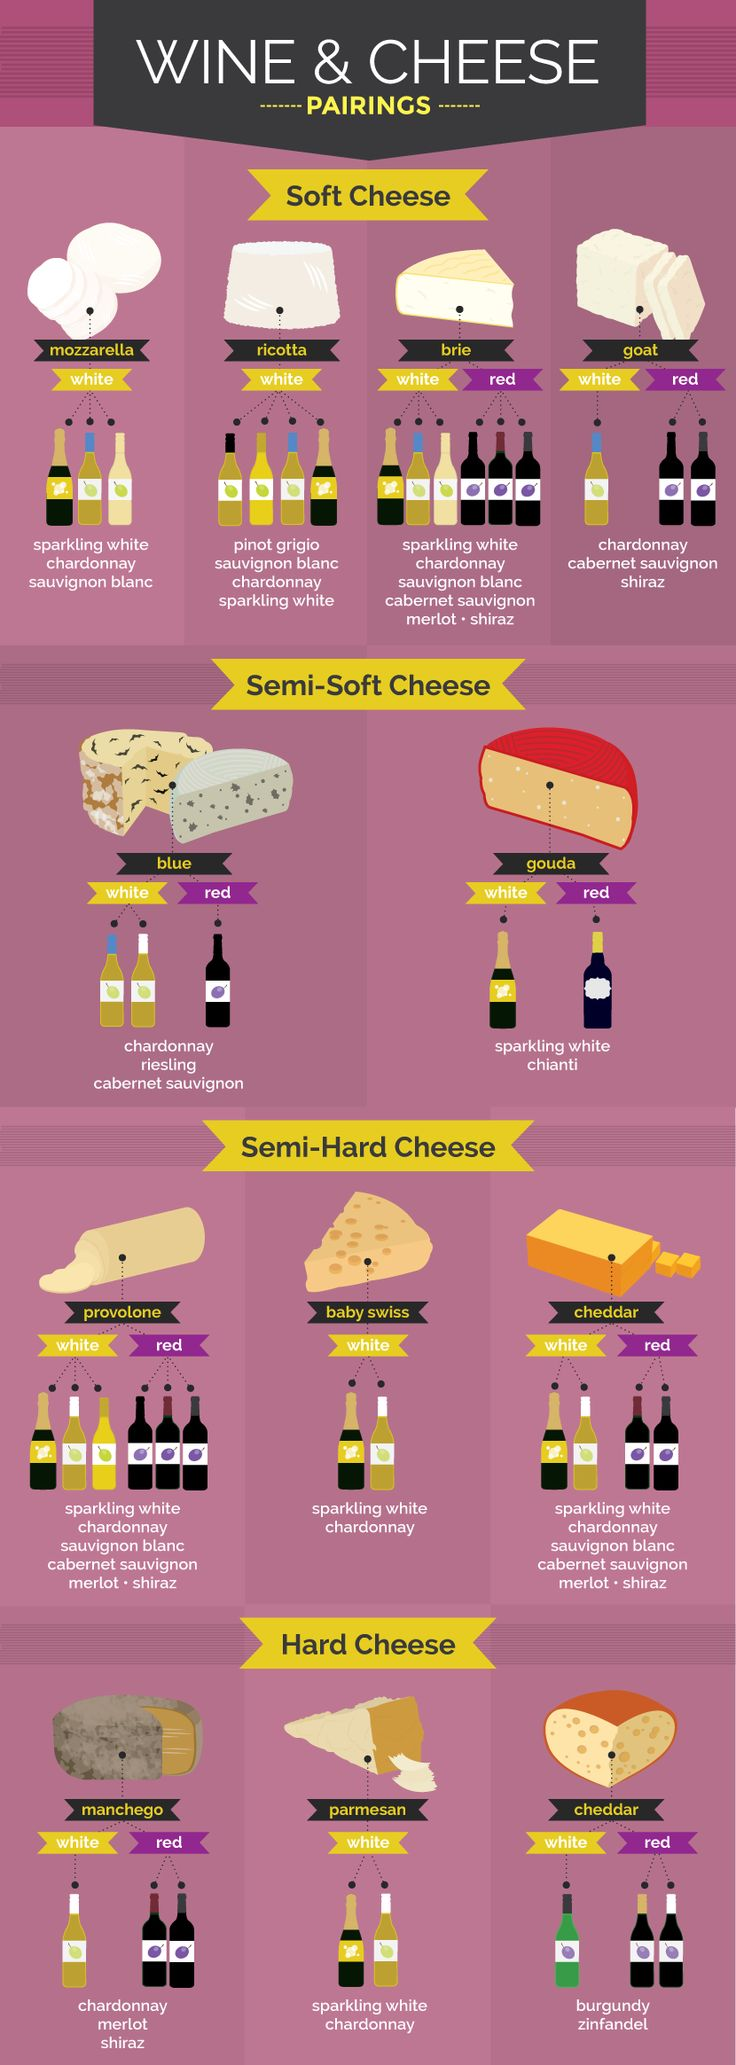 The best pairings for wine and cheese                                                                                                                                                      More